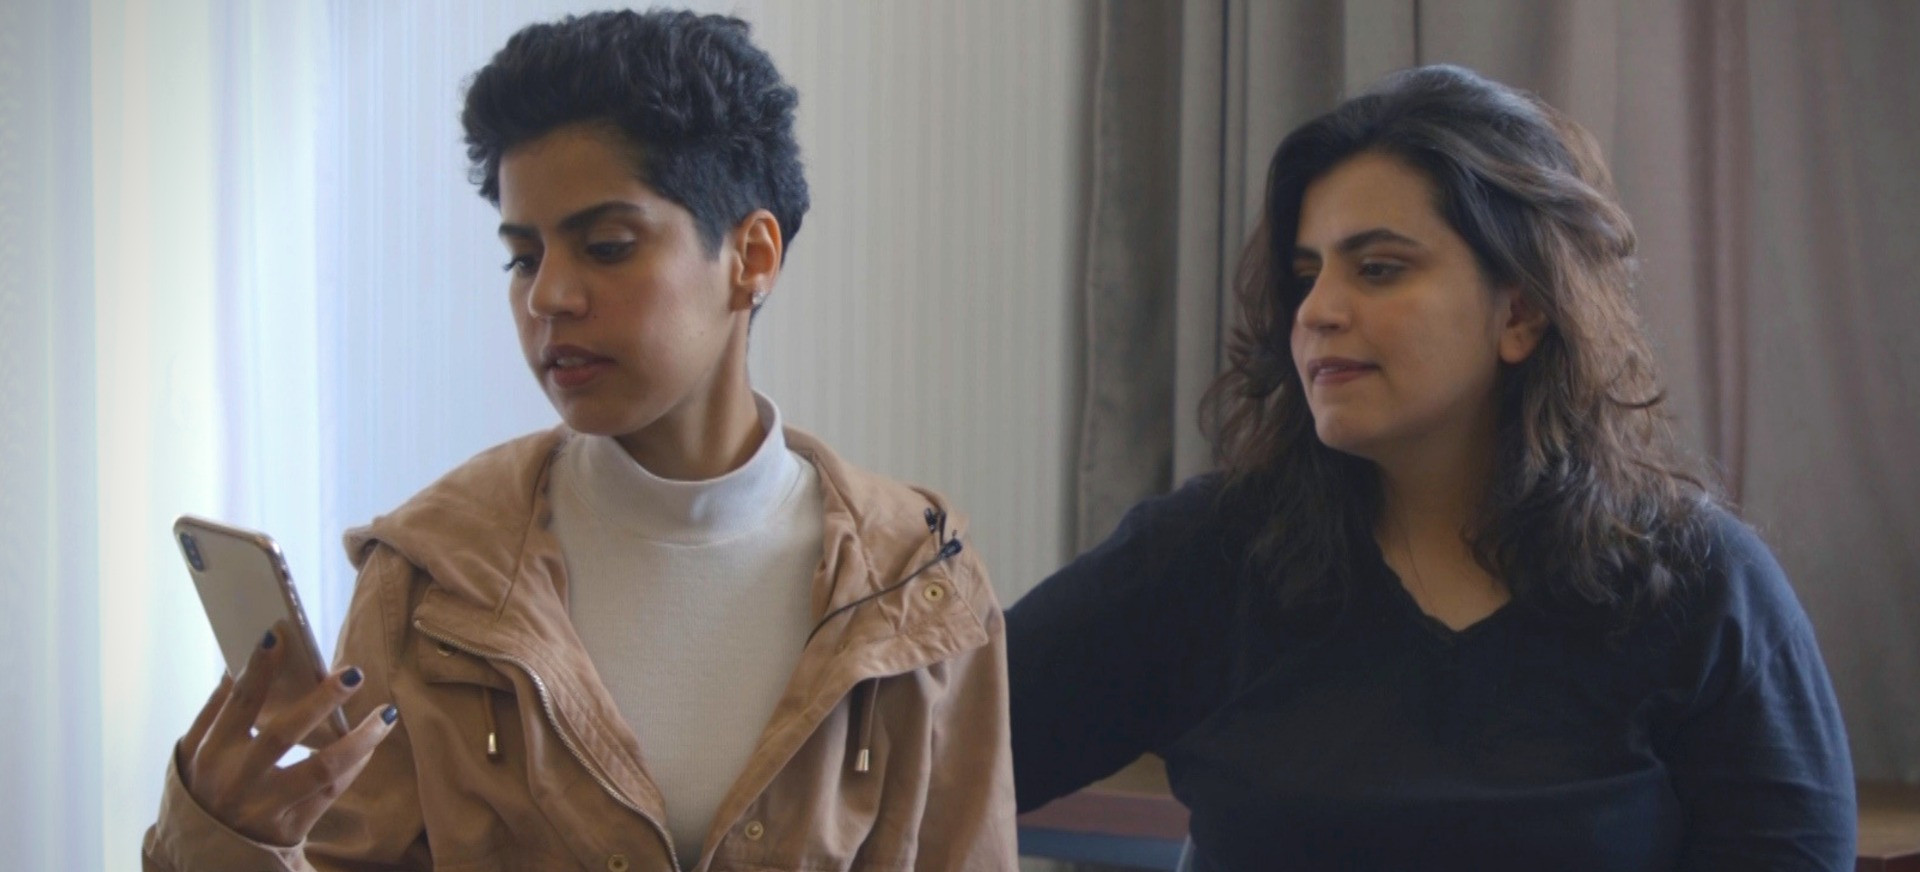 Fleeing Saudi sisters issue plea for help and a message for Apple and Google